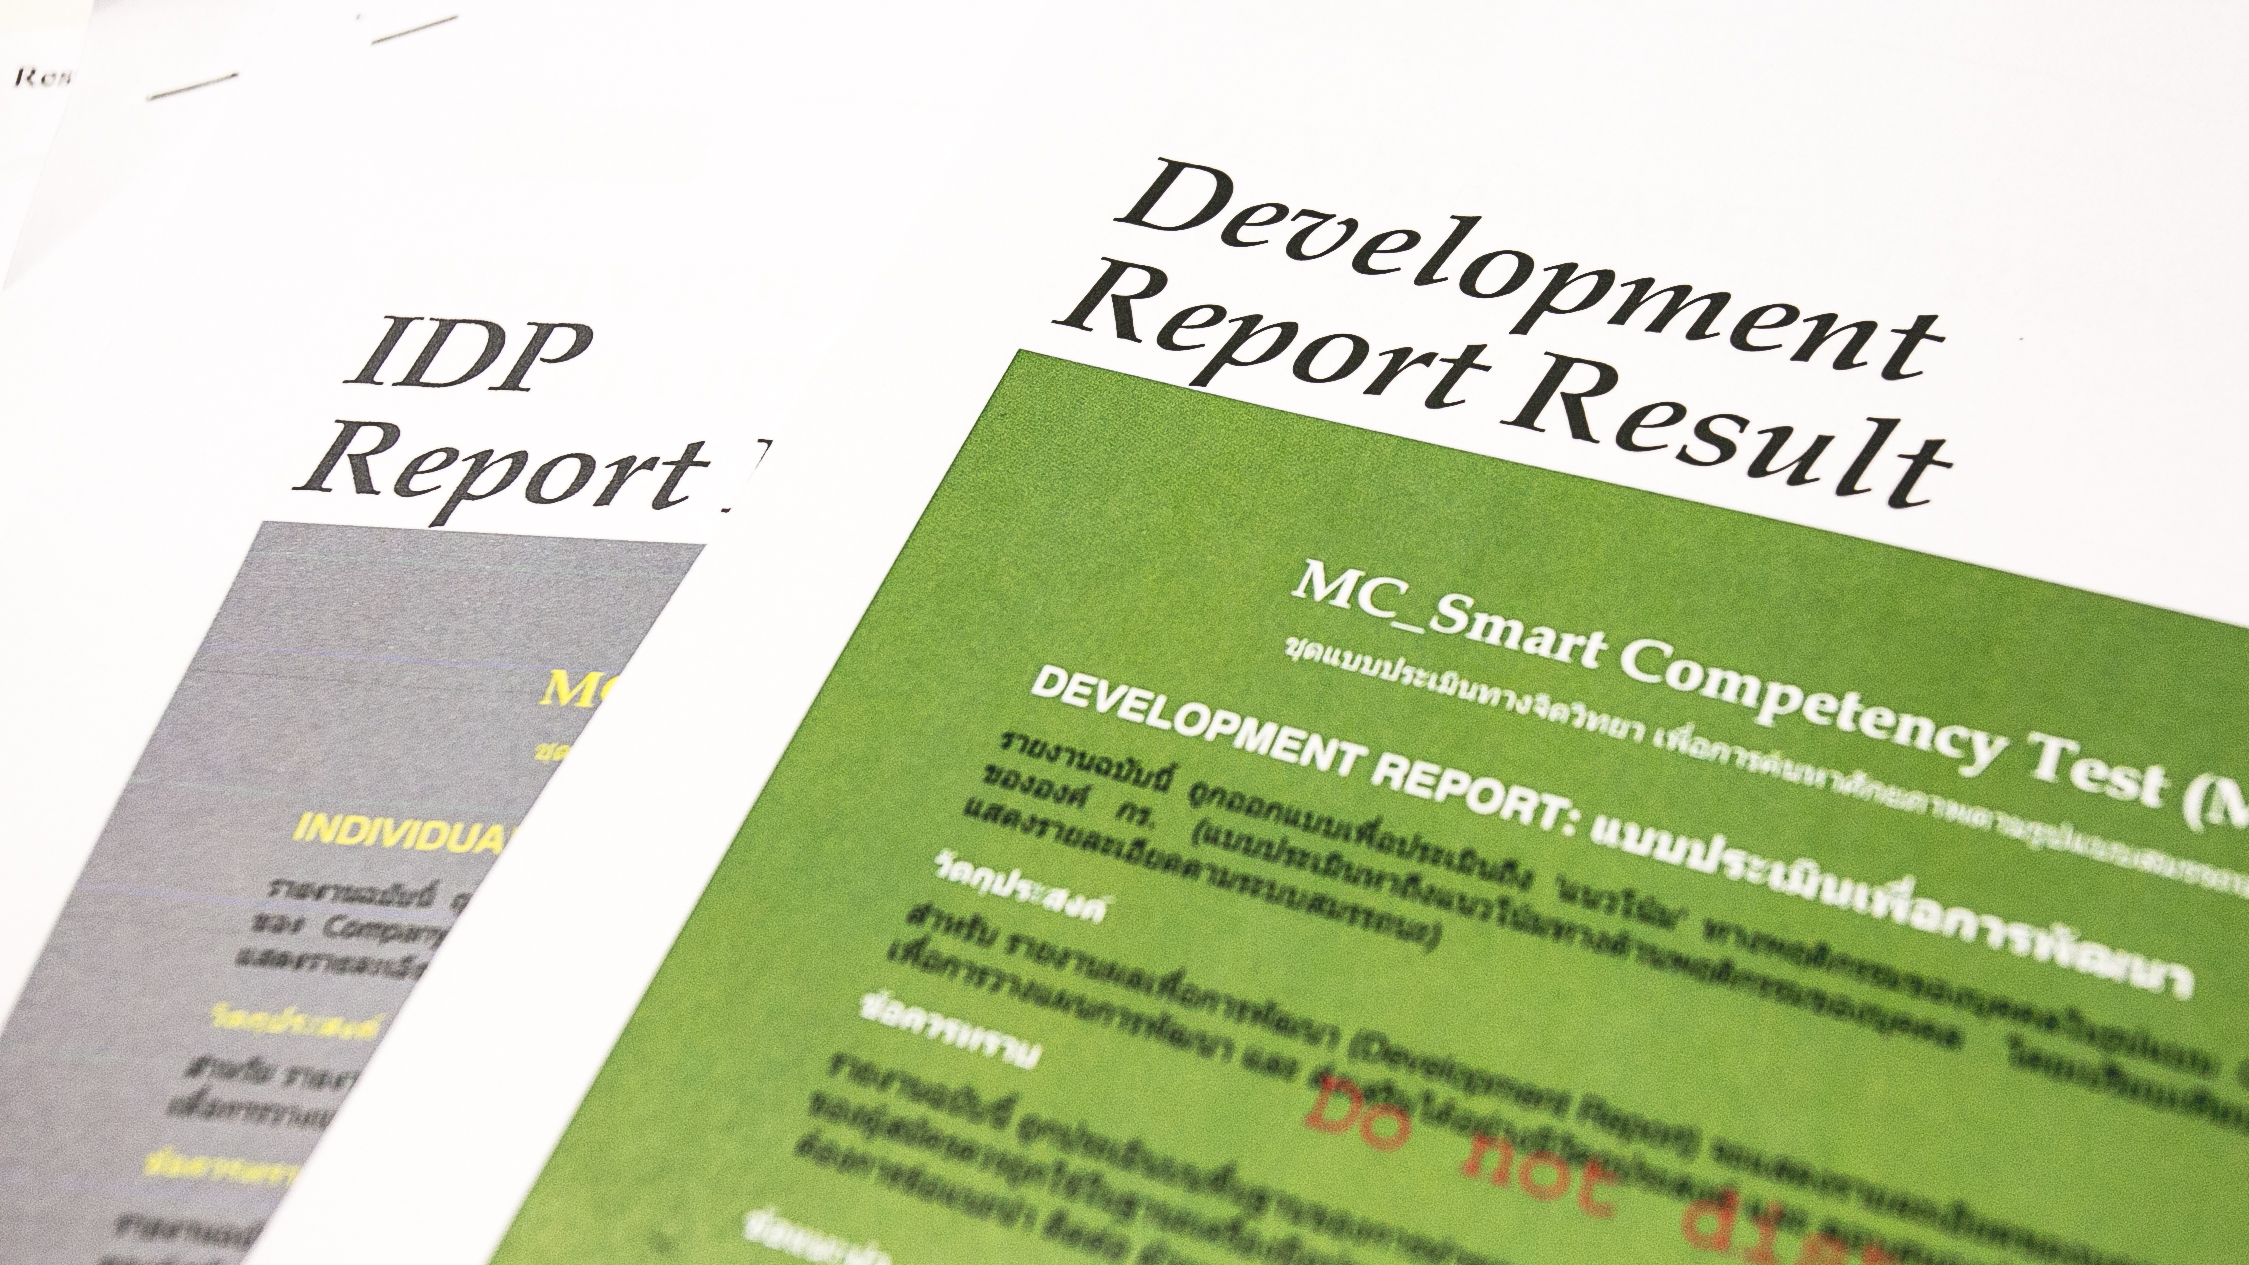 Development Report